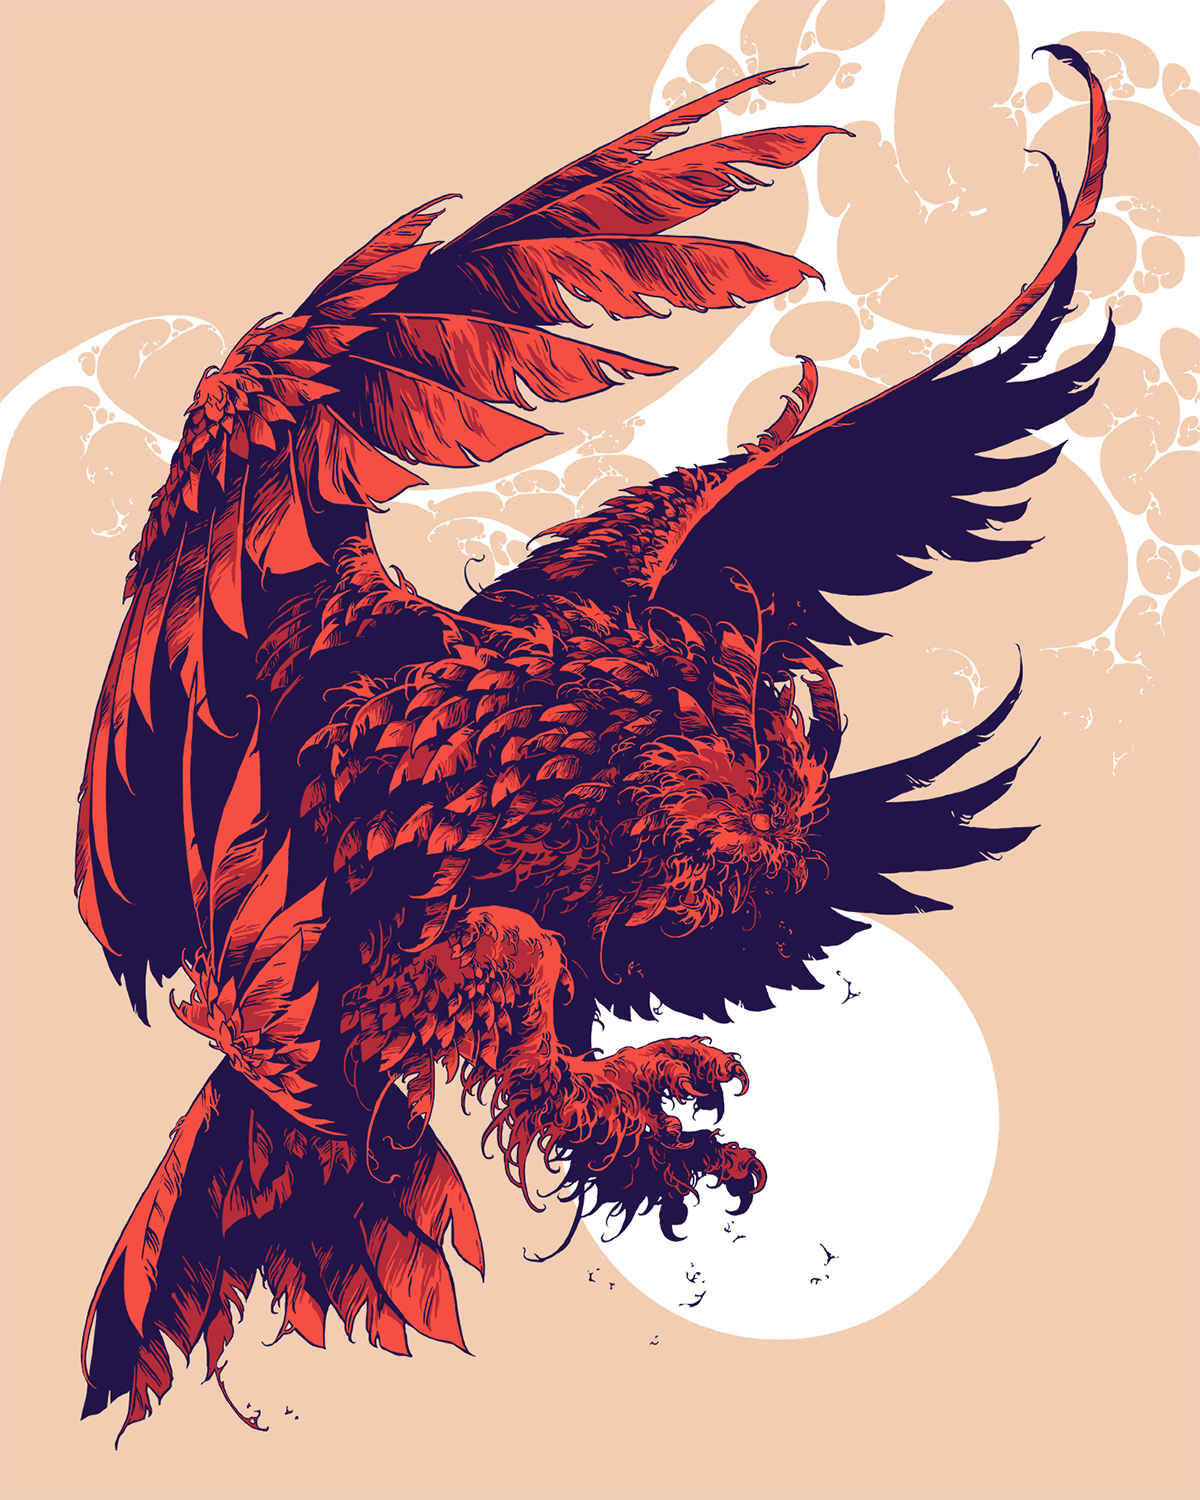 Beasts and feathers - Image 9 of 8